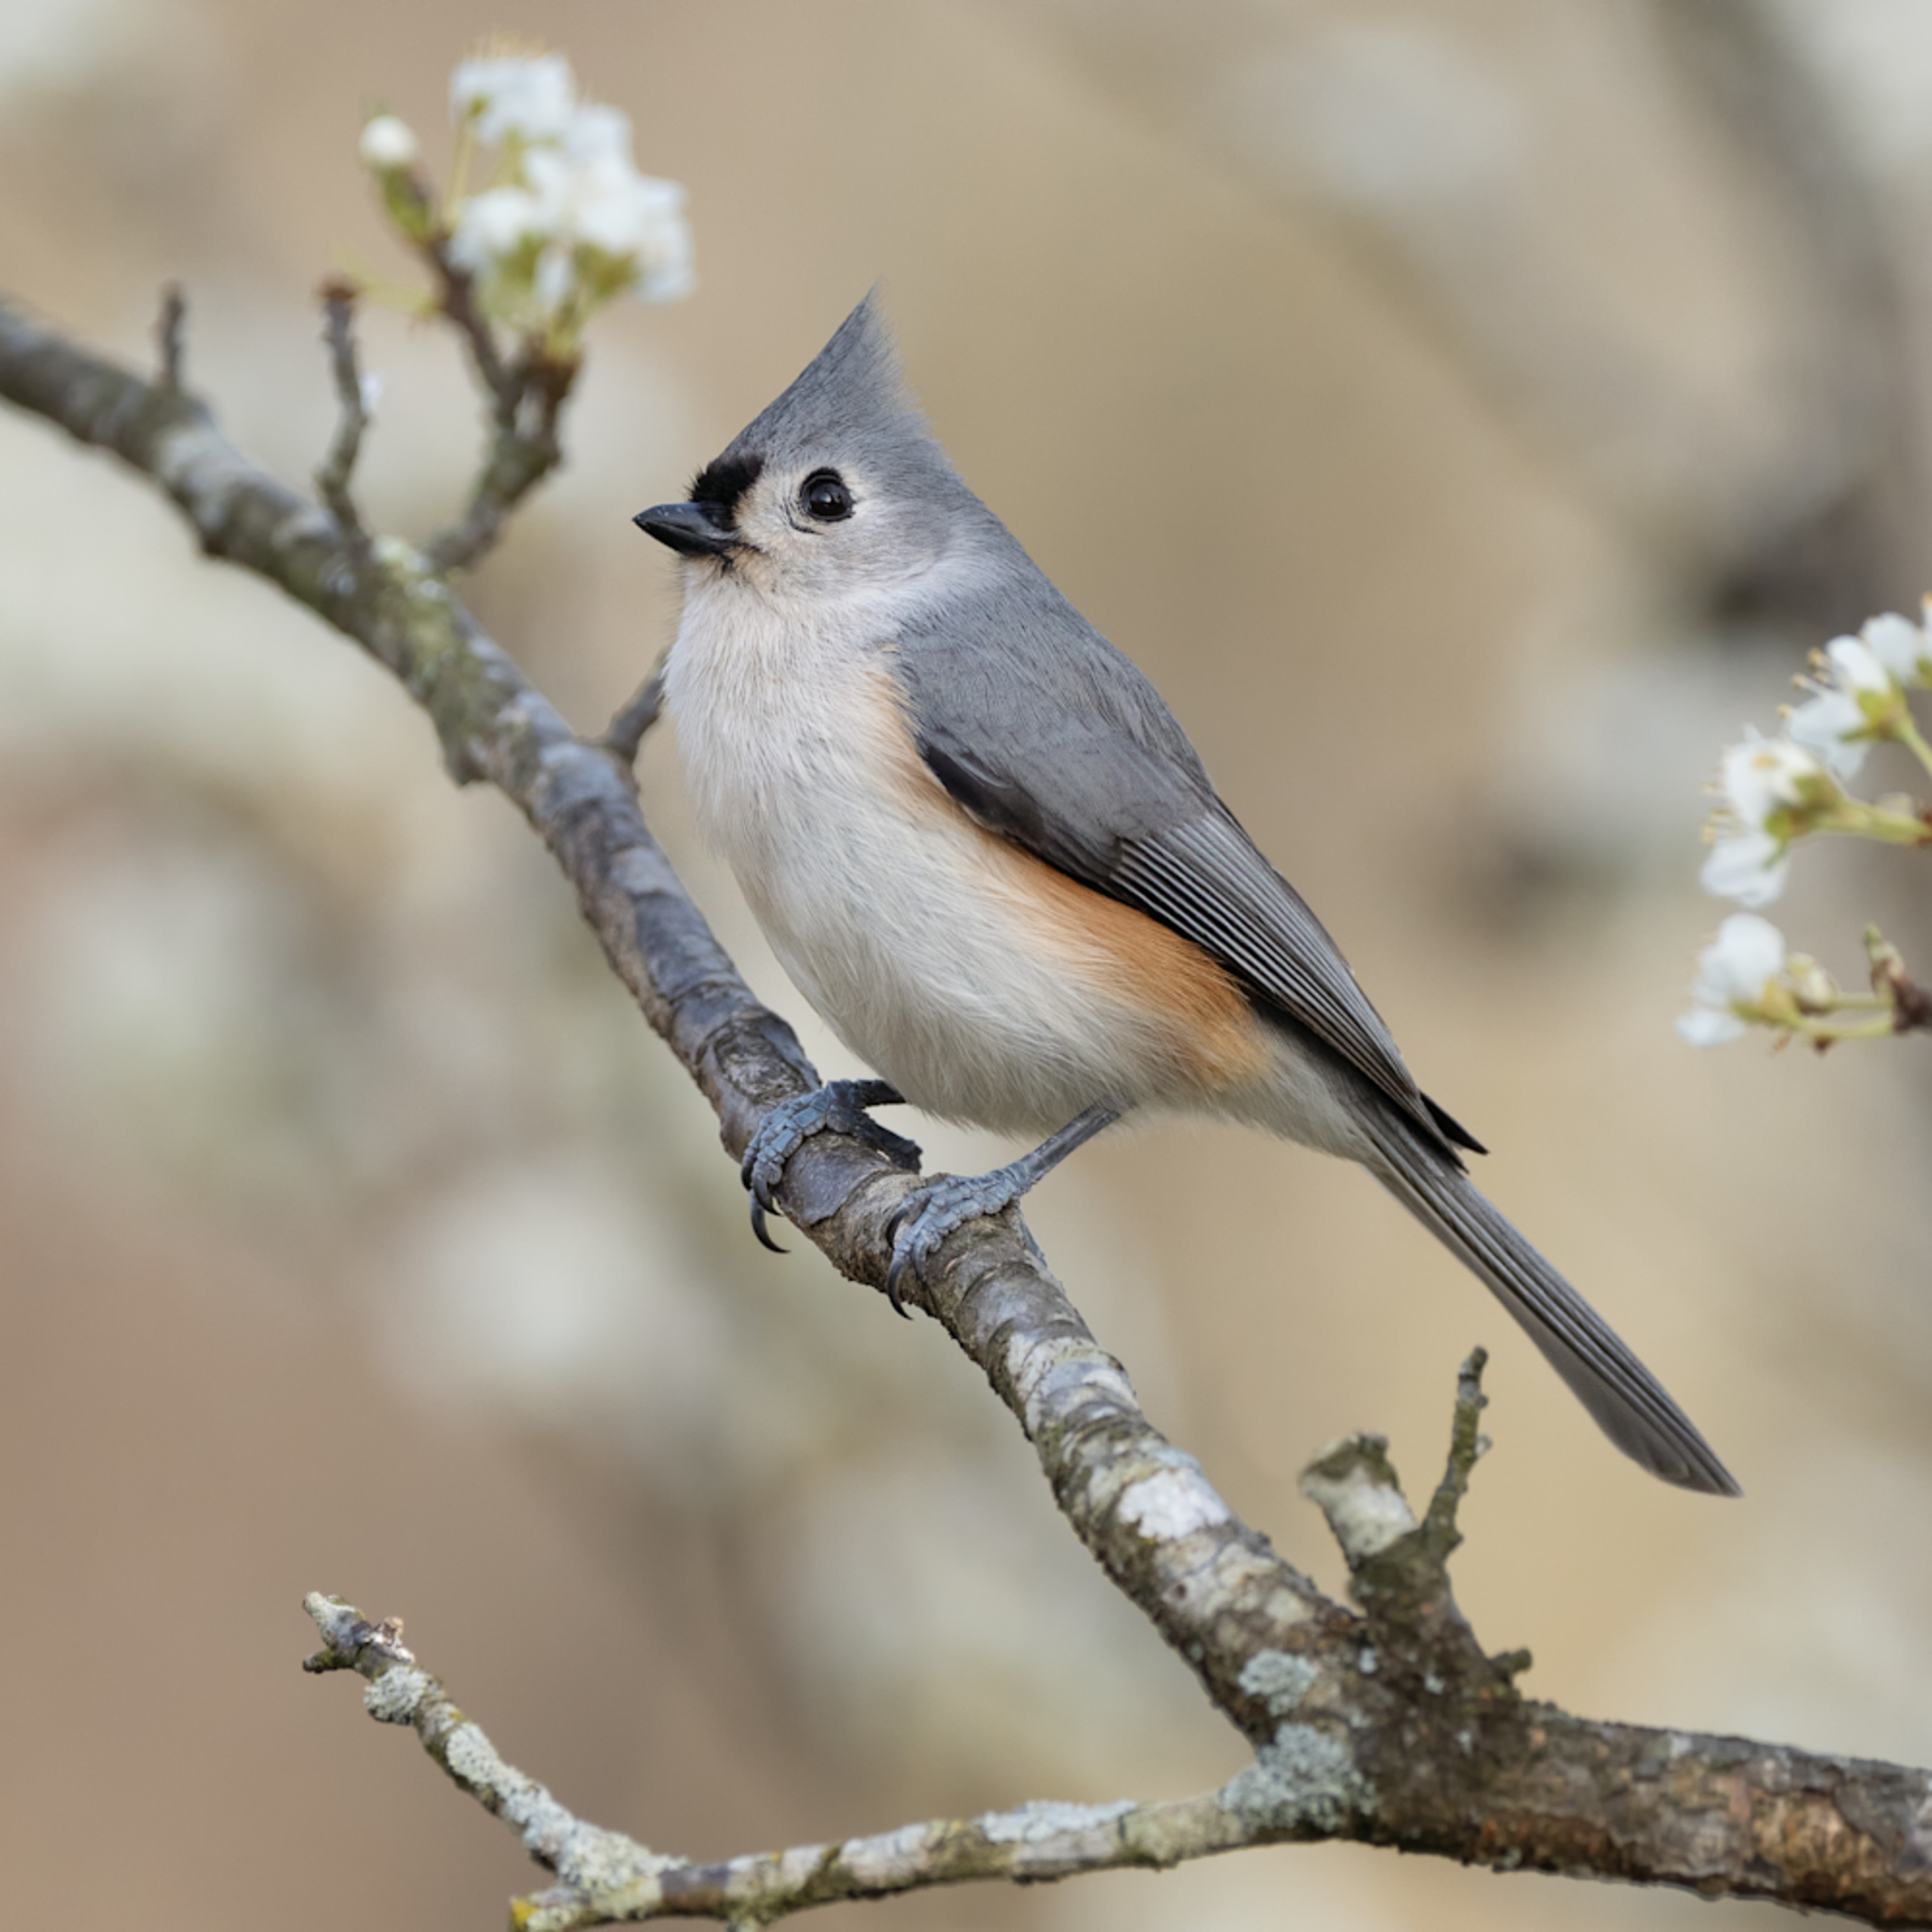 Forsyth county tuted titmouse kxehxb